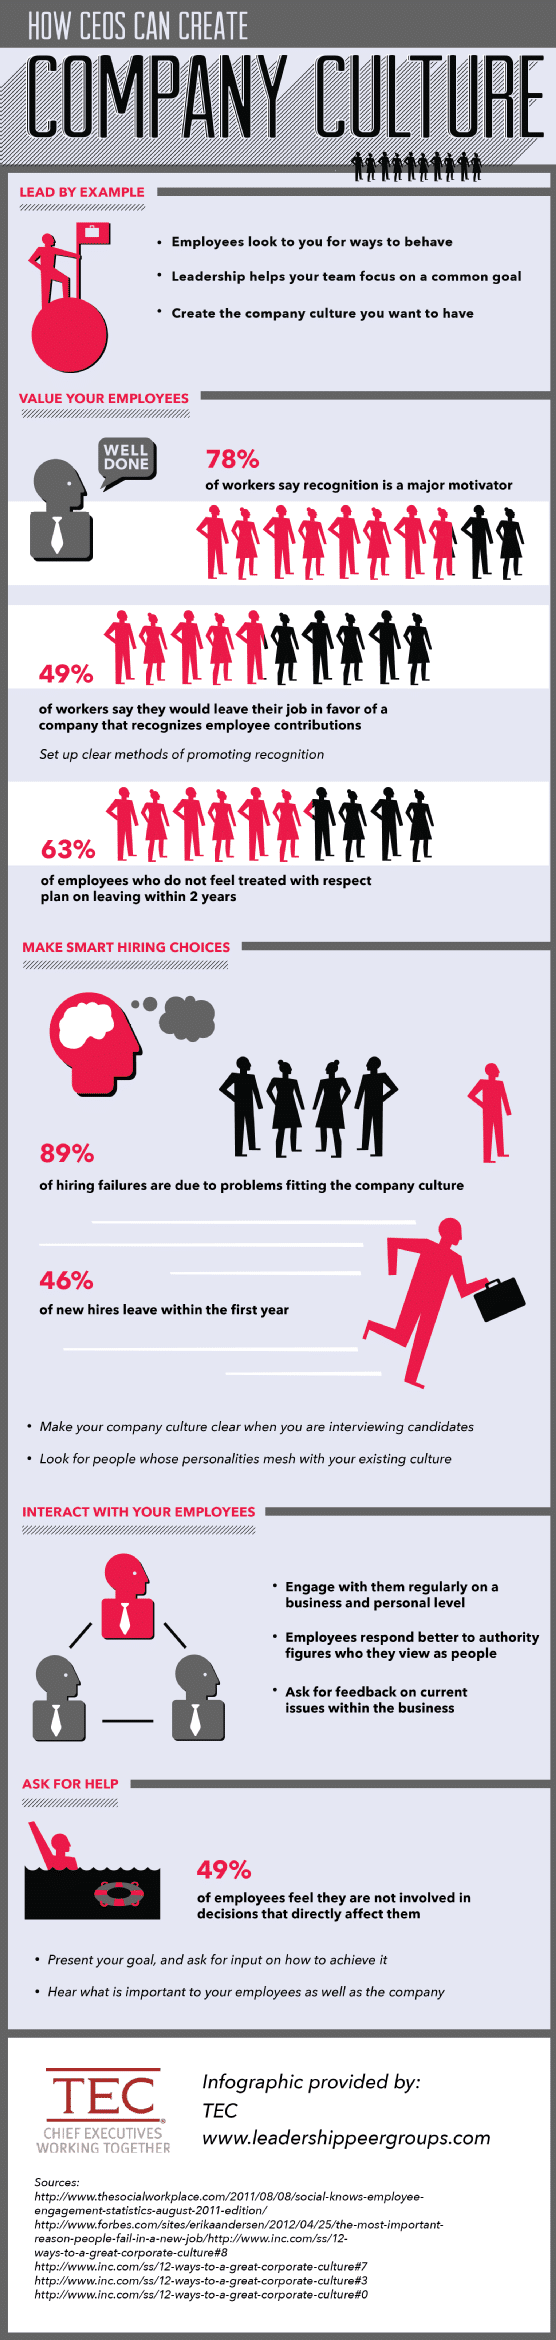 How To Create An Inspiring Company Culture [Infographic]